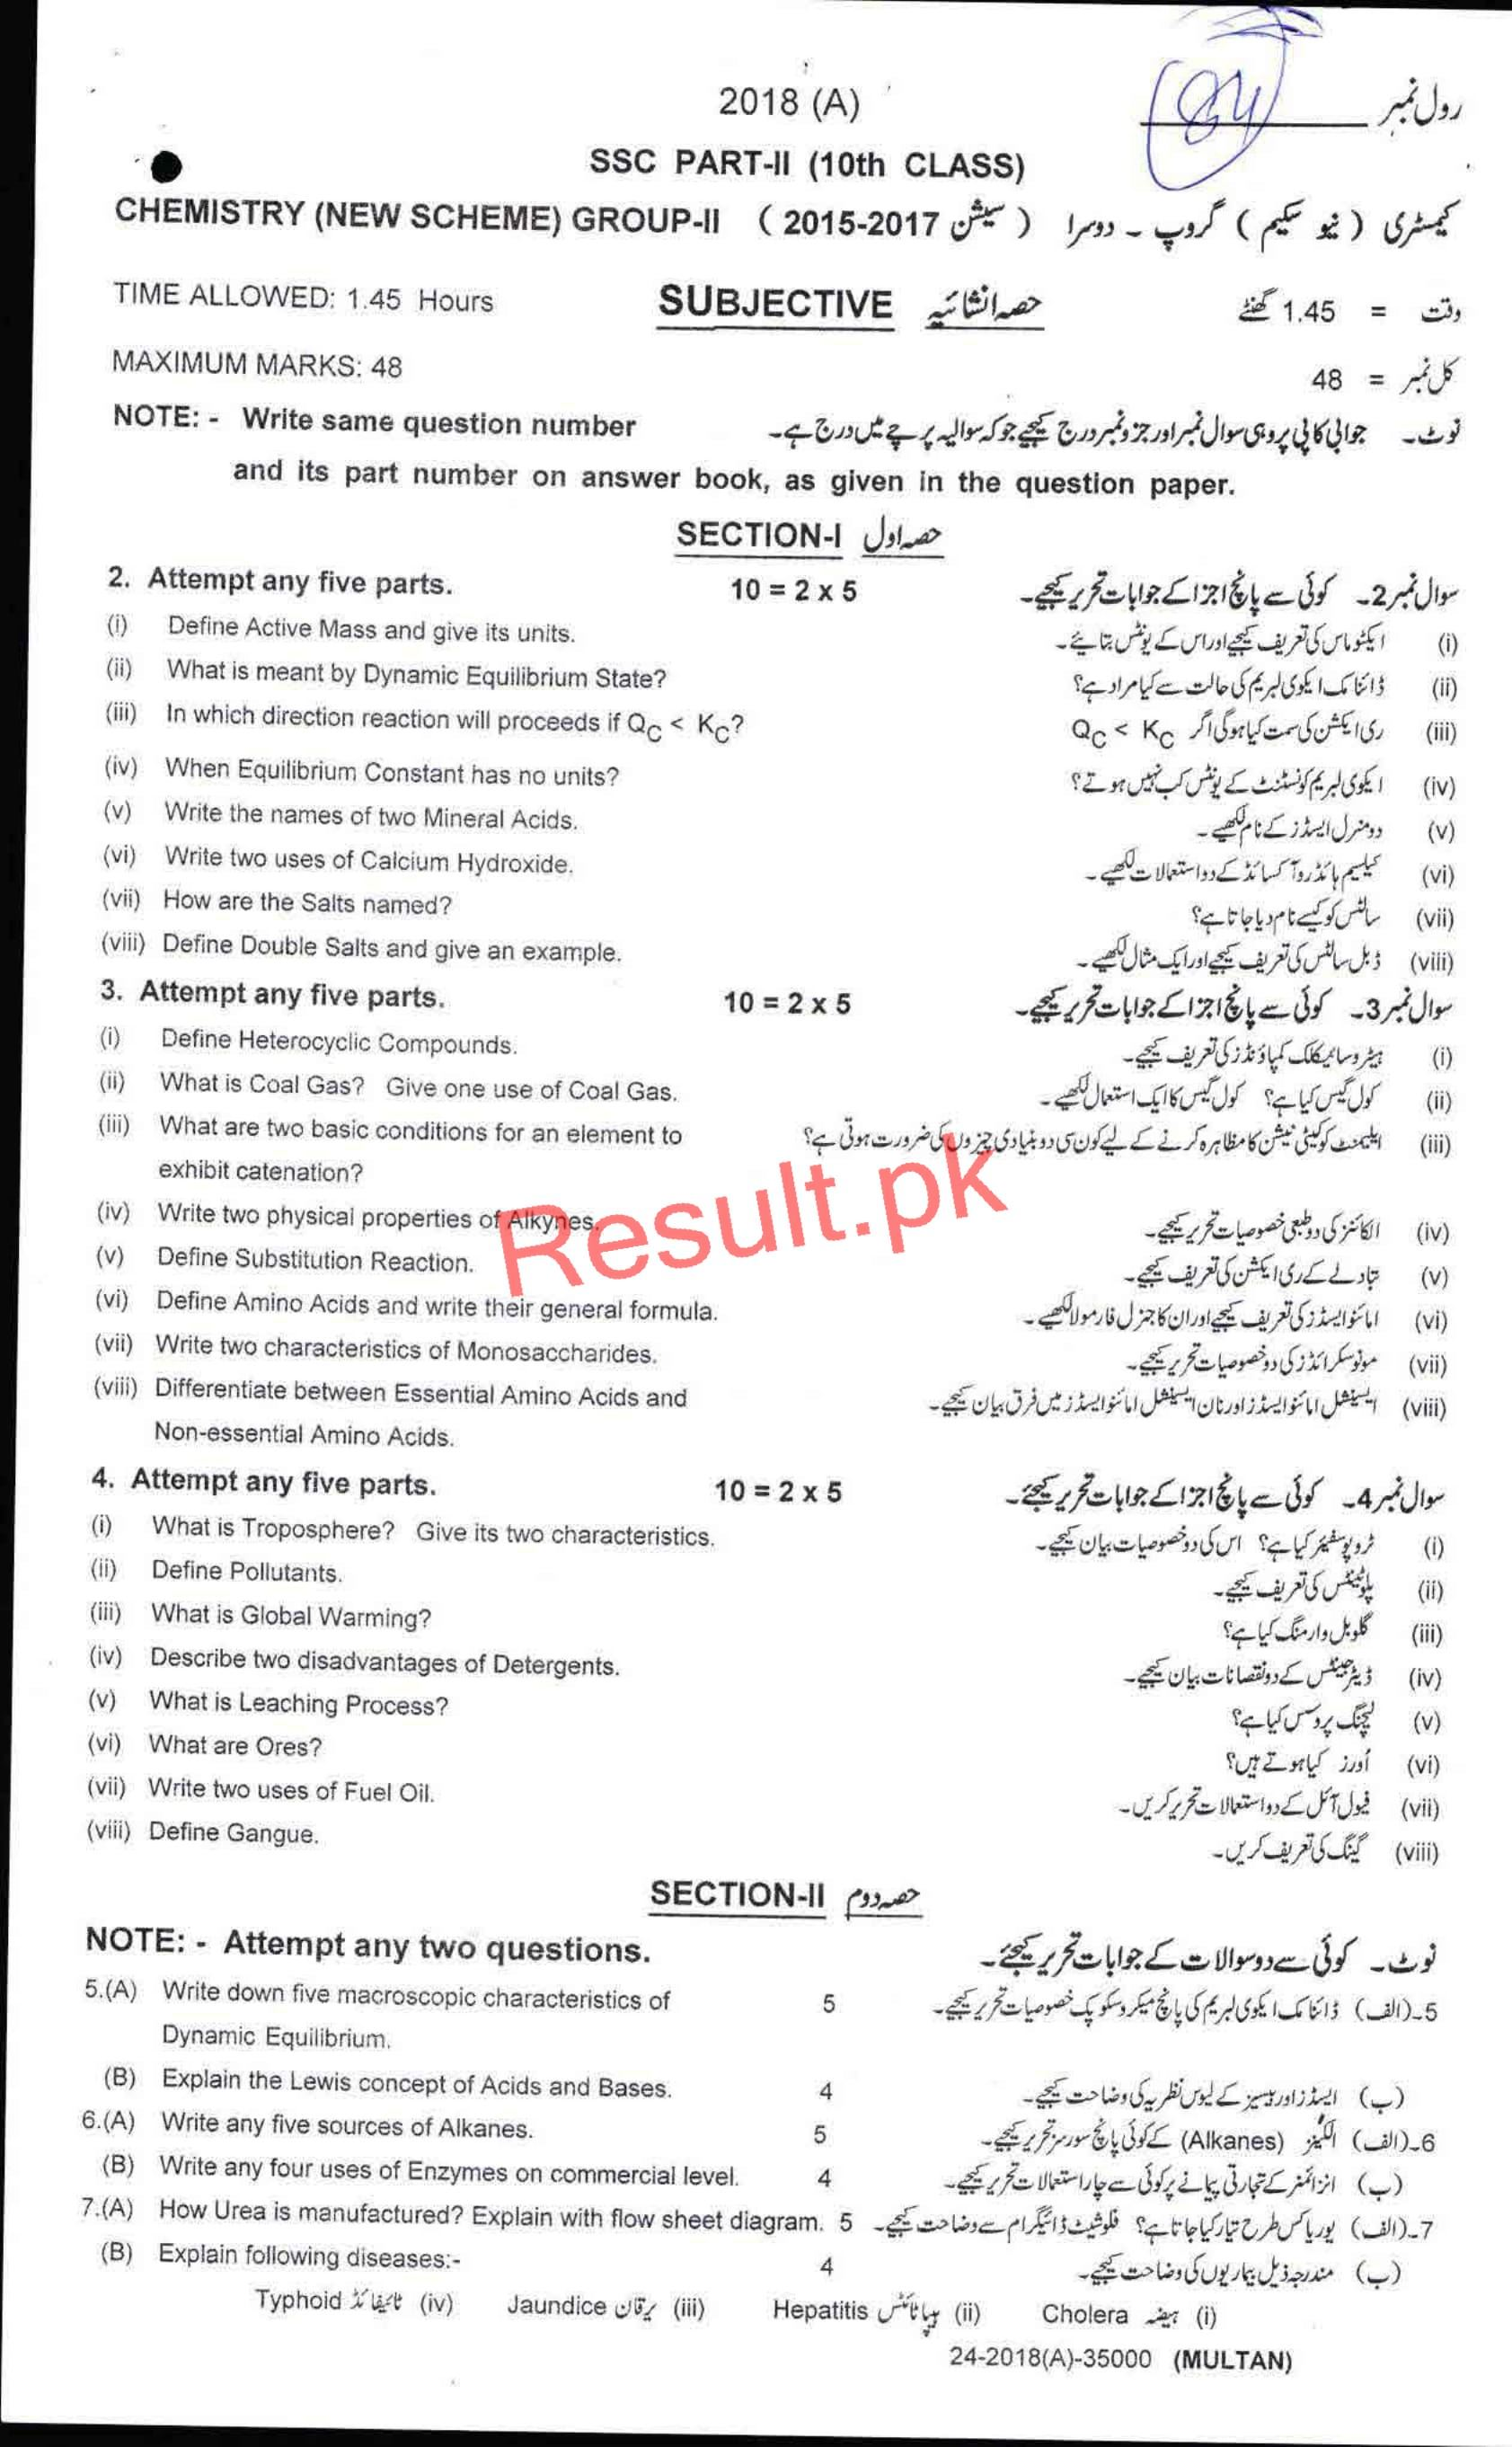 BISE Multan Board Past Papers 2019 Matric, SSC Part 1 & 2